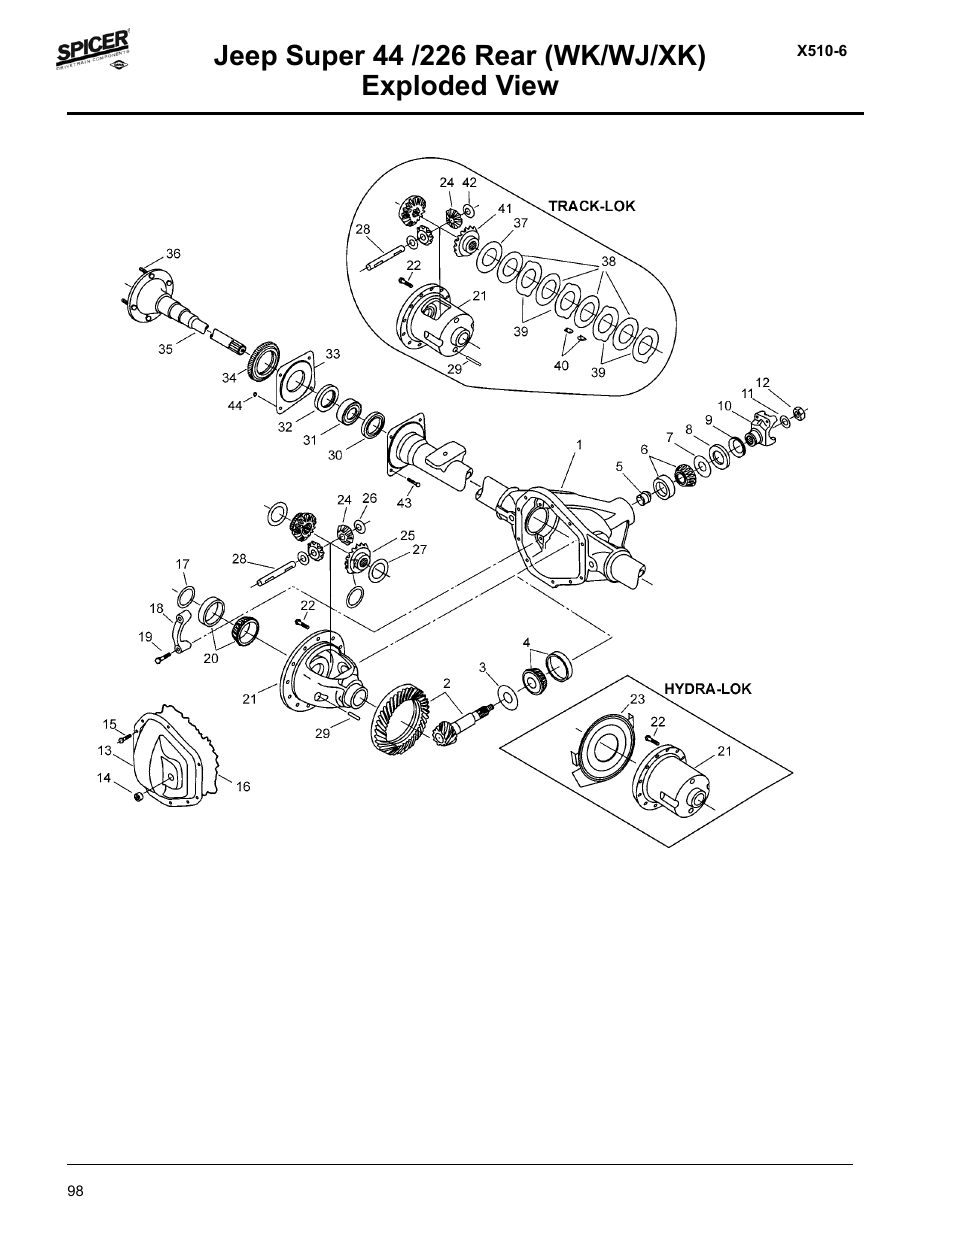 Spicer Jeep Applications 1999-2011 Light Axle Parts User